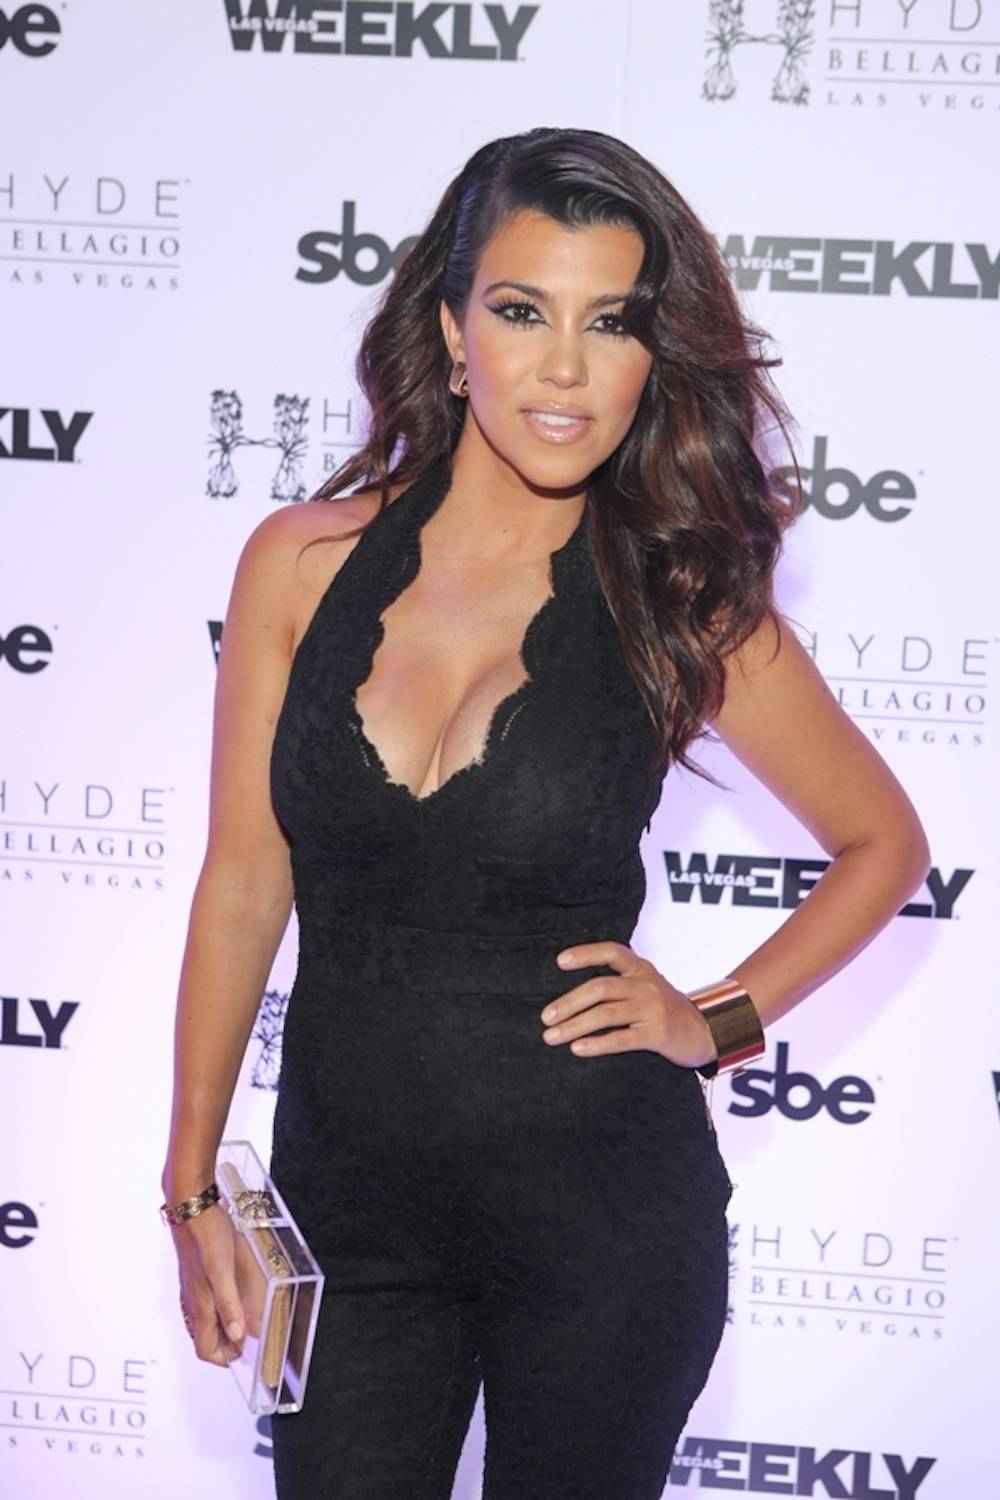 Kourtney Kardashian on red carpet at Hyde Bellagio, Las Vegas, 8.31.13 - photo credit - Hyde Bellagio